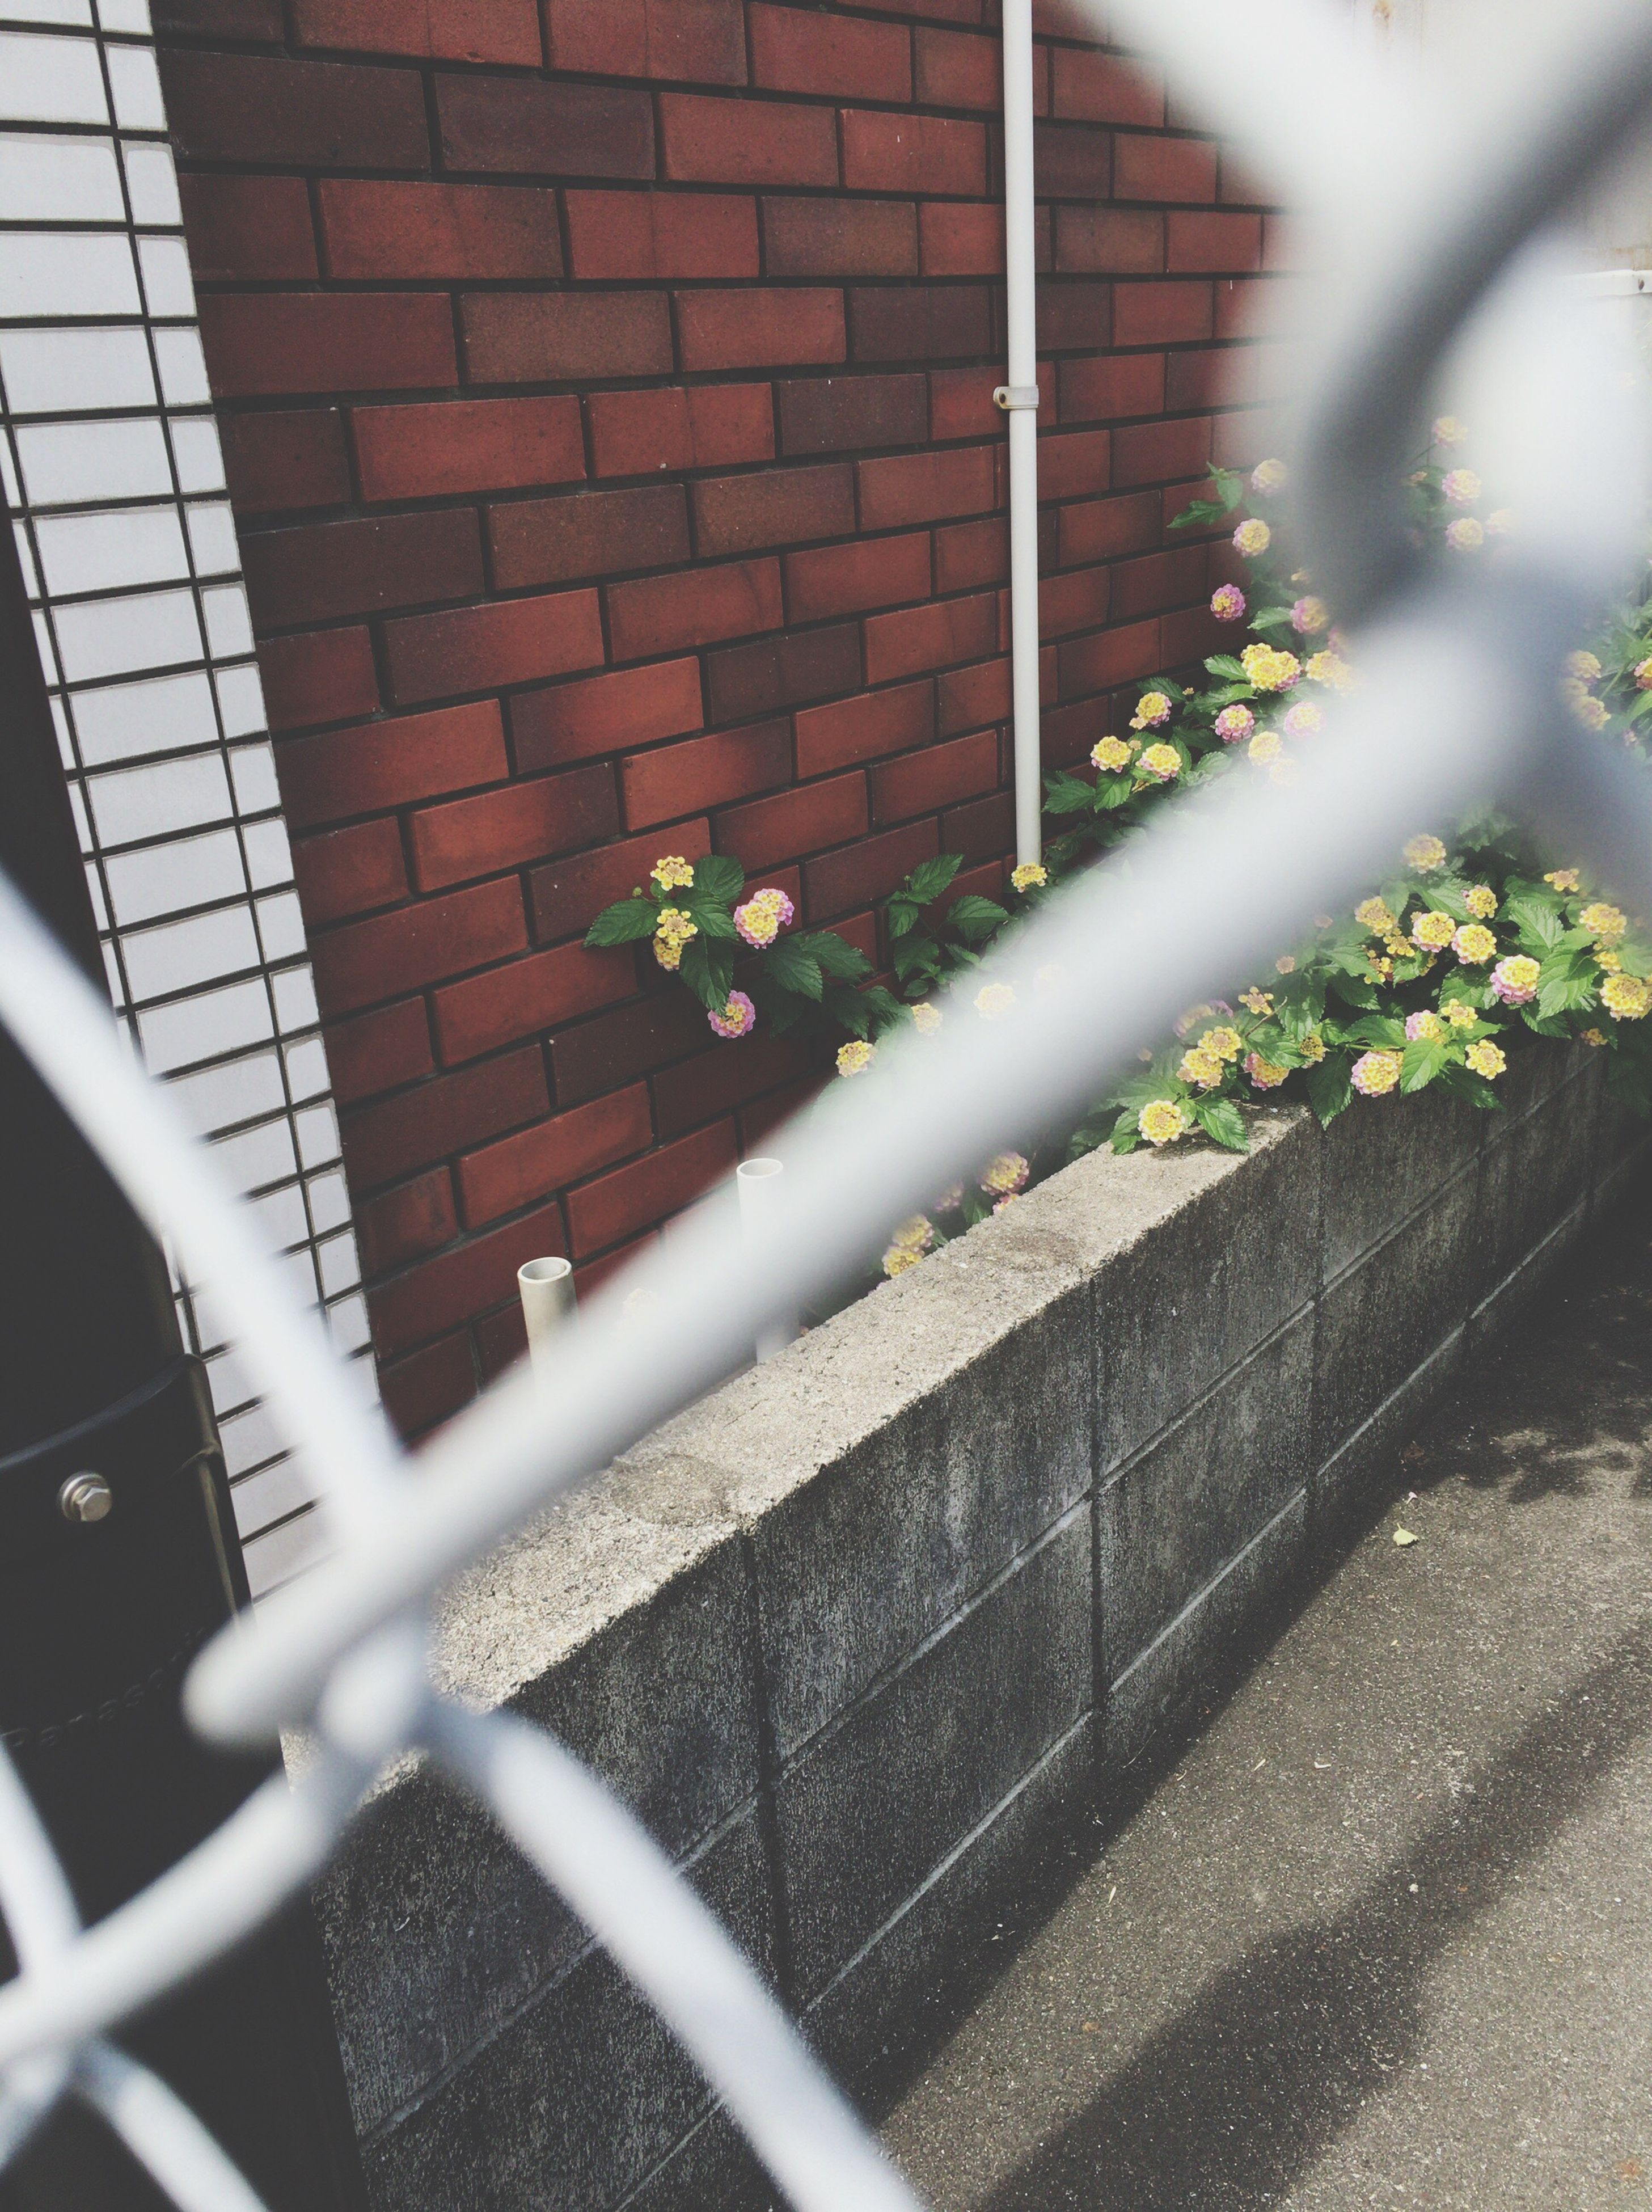 plant, built structure, flower, wall - building feature, architecture, fence, chainlink fence, protection, metal, railing, day, growth, building exterior, safety, no people, brick wall, close-up, outdoors, window, nature